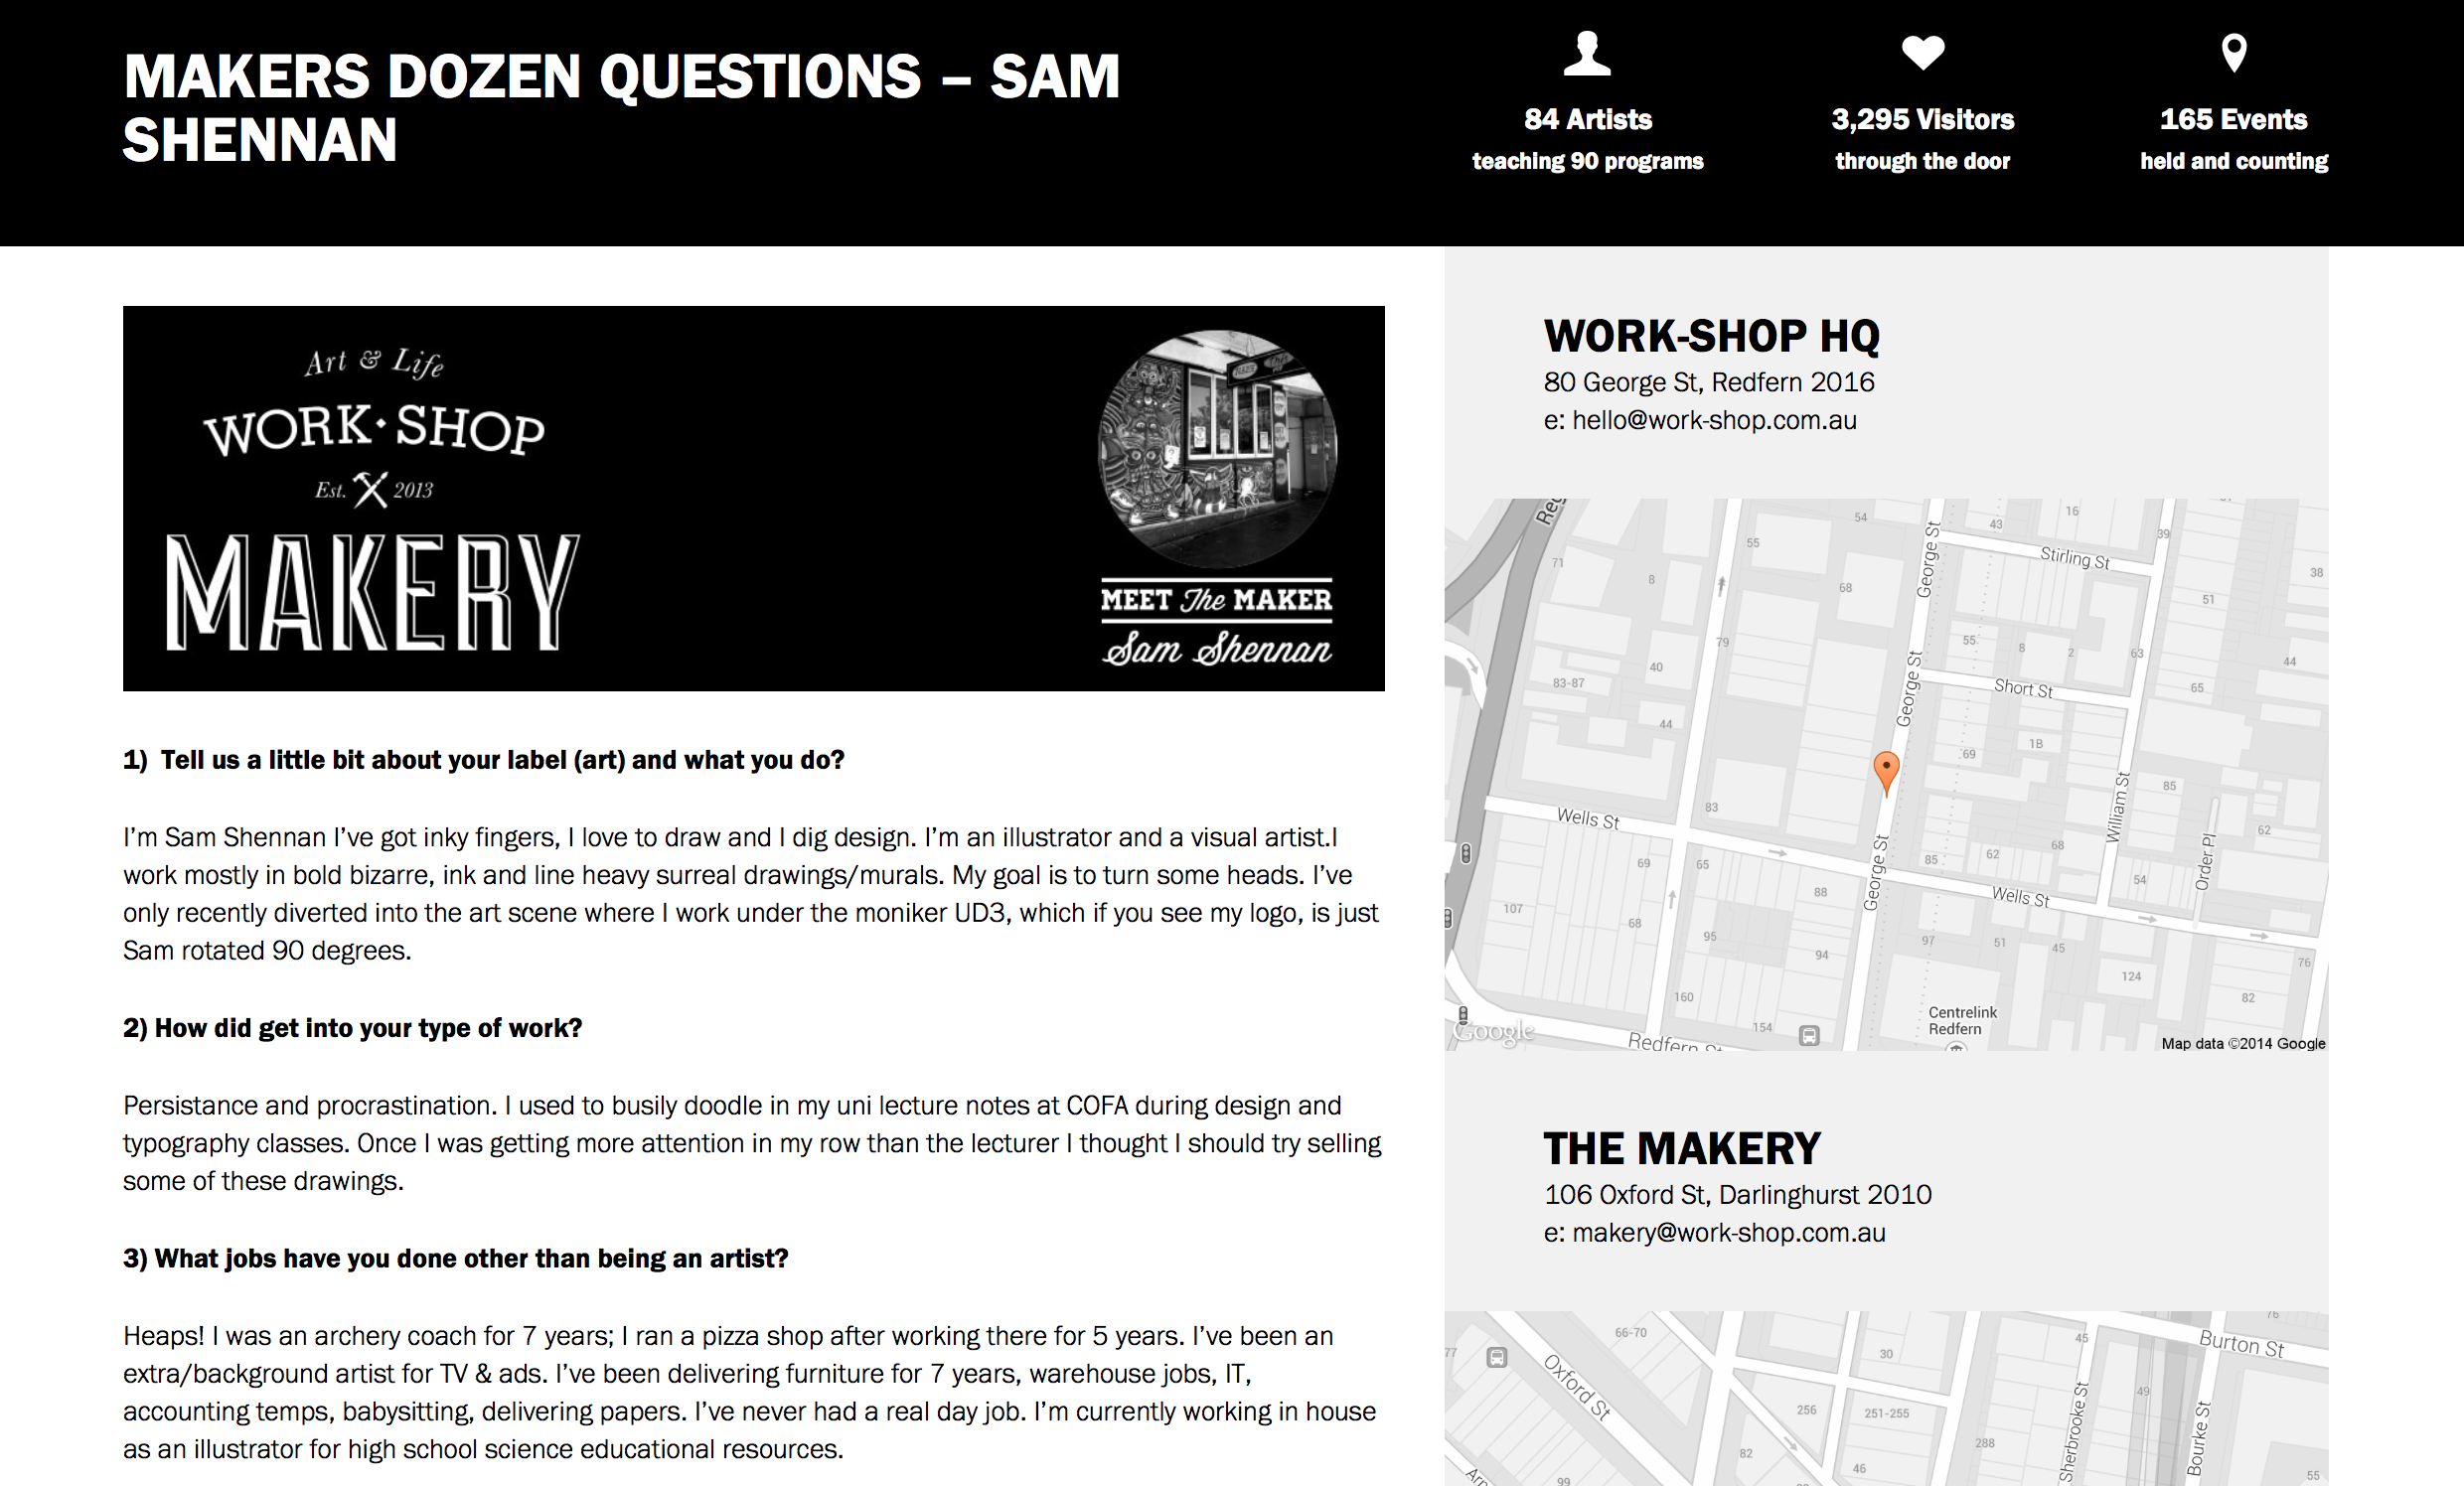 makery-interview-artist-questions-makers-dozen-sam-shennan-ud3.png